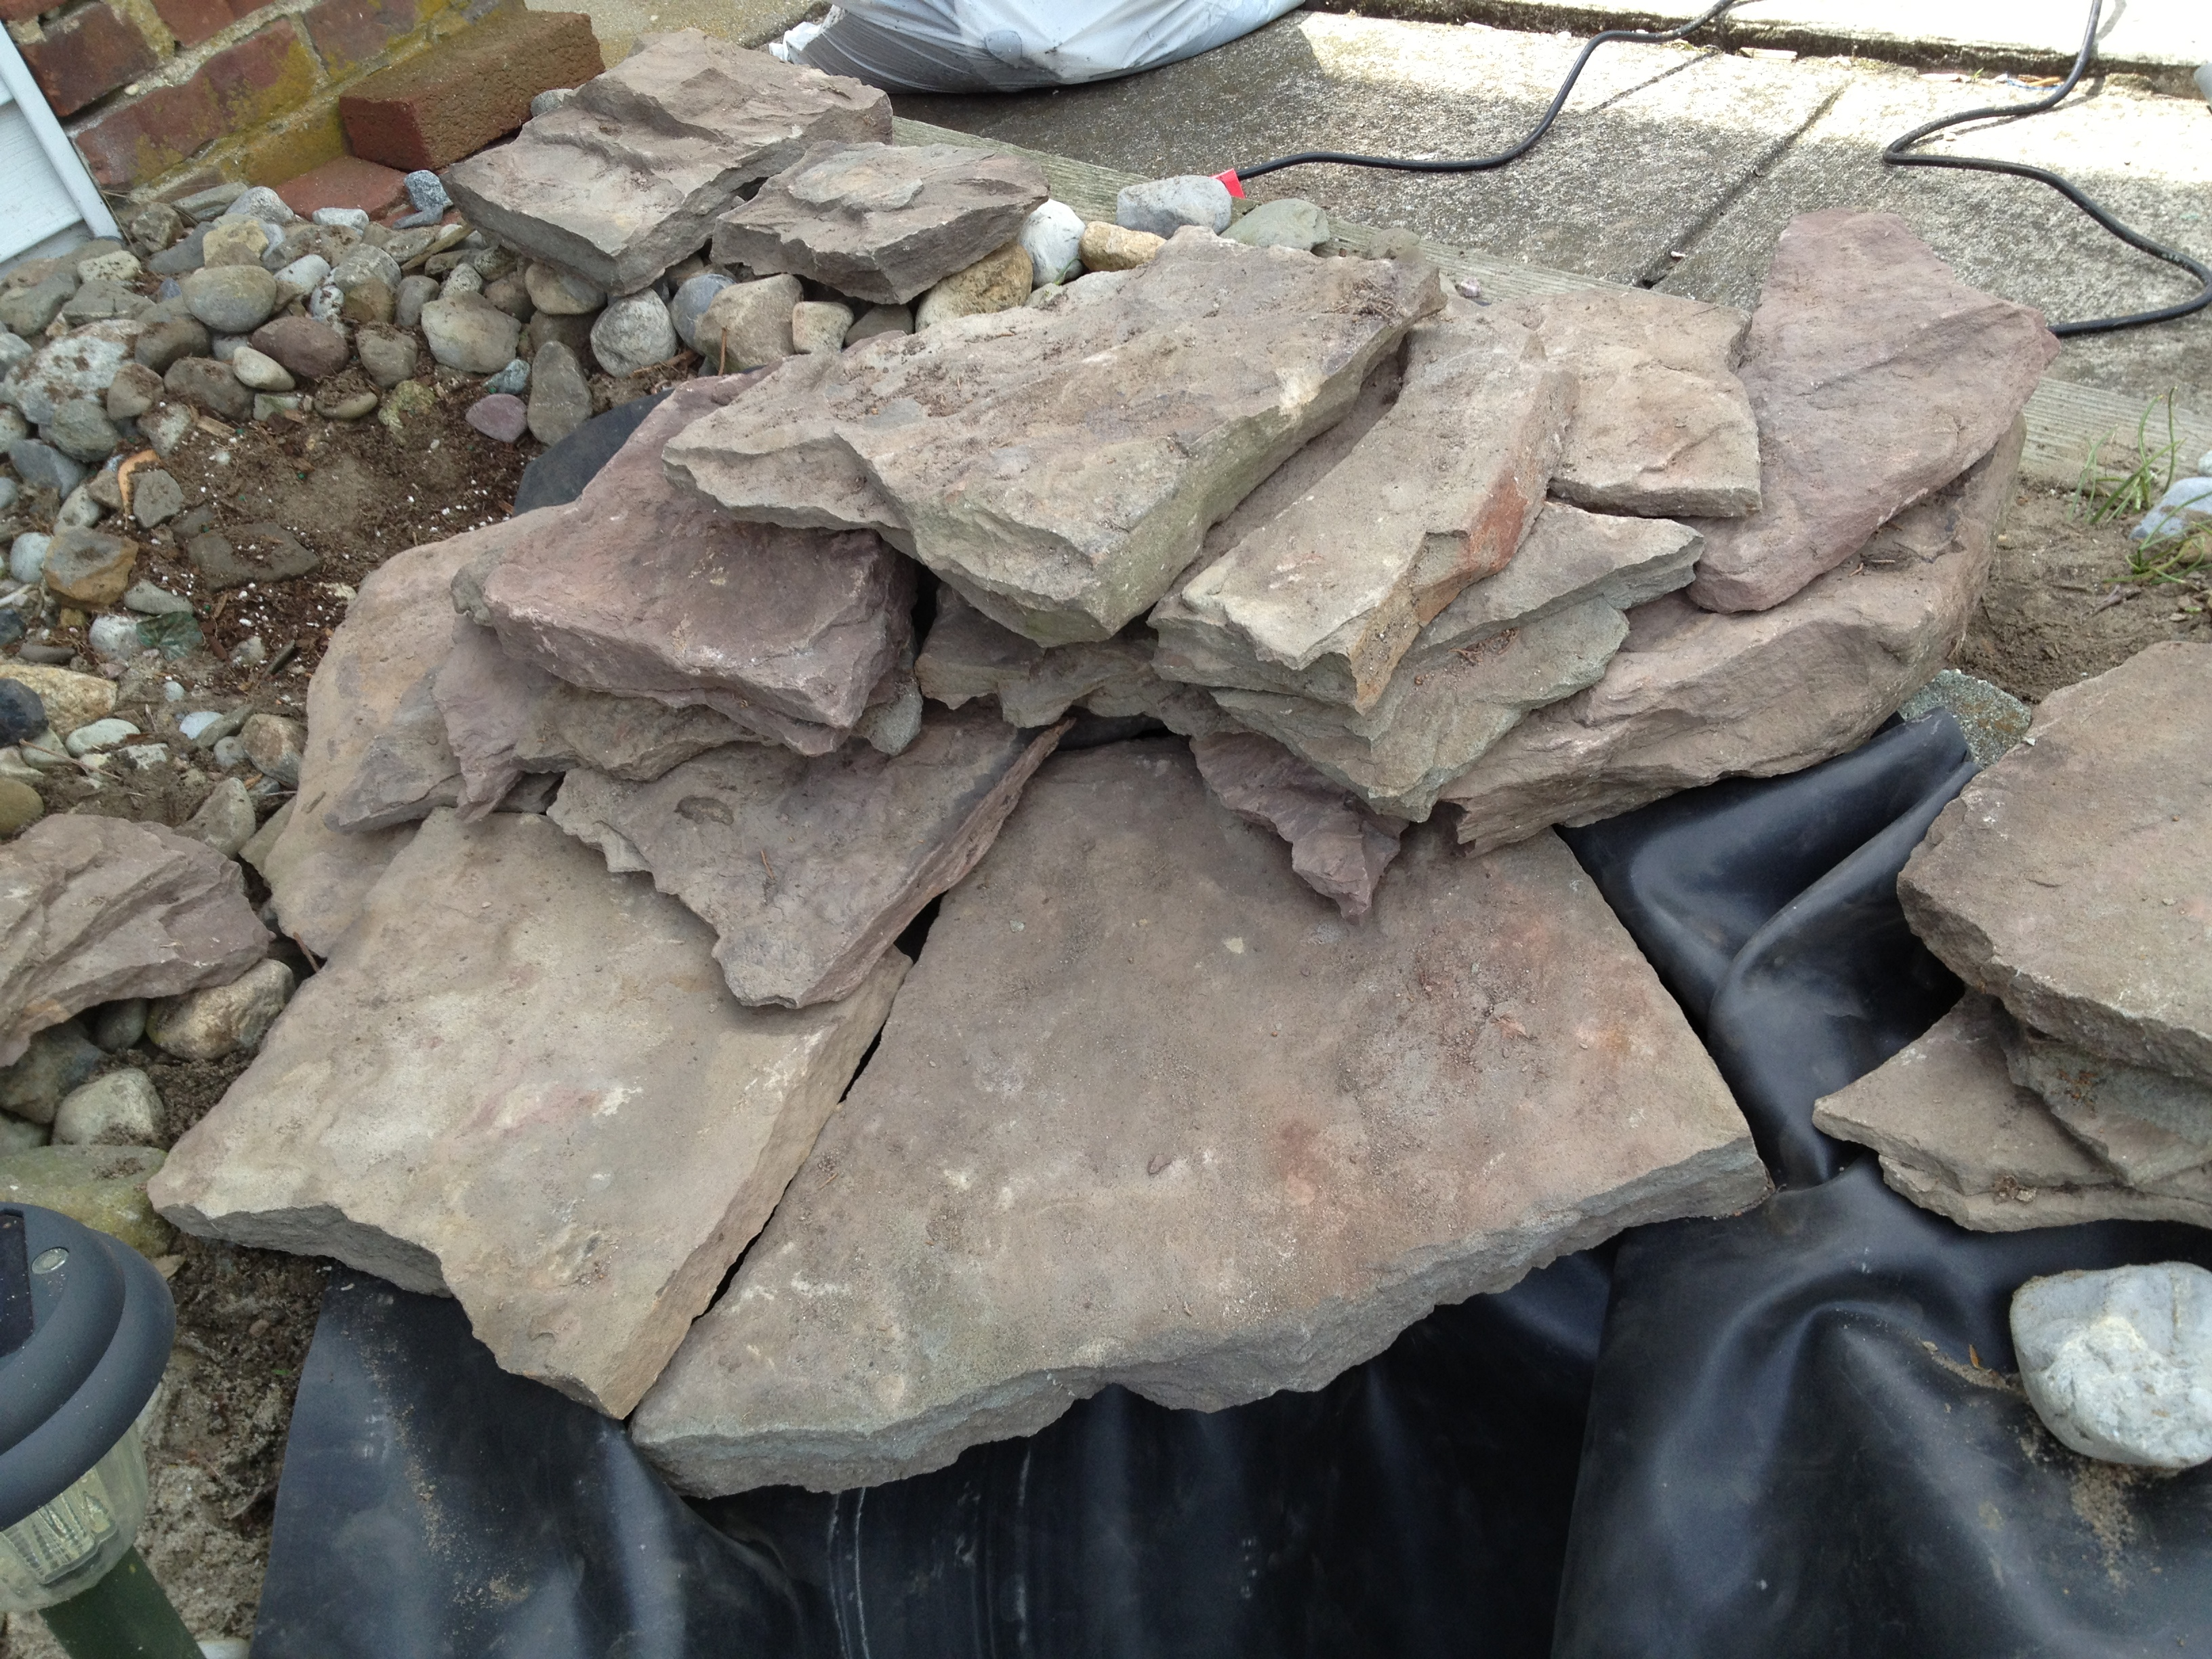 How to build a garden waterfall pond a girl 39 s guide to diy for Garden pond edging stones